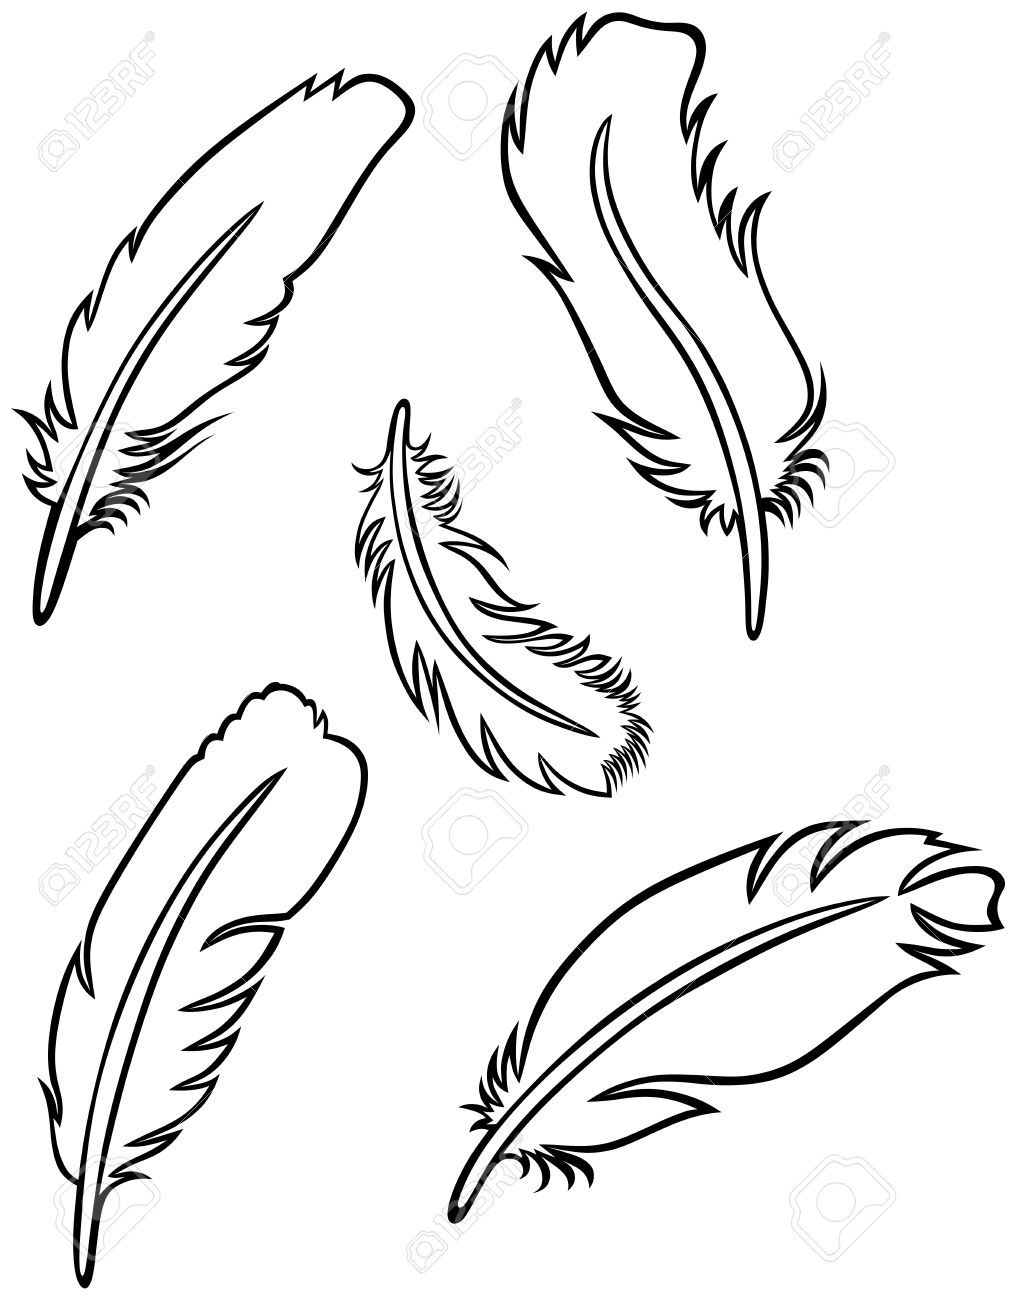 Easy Feather Drawings Google Search Bike Paint Jobs